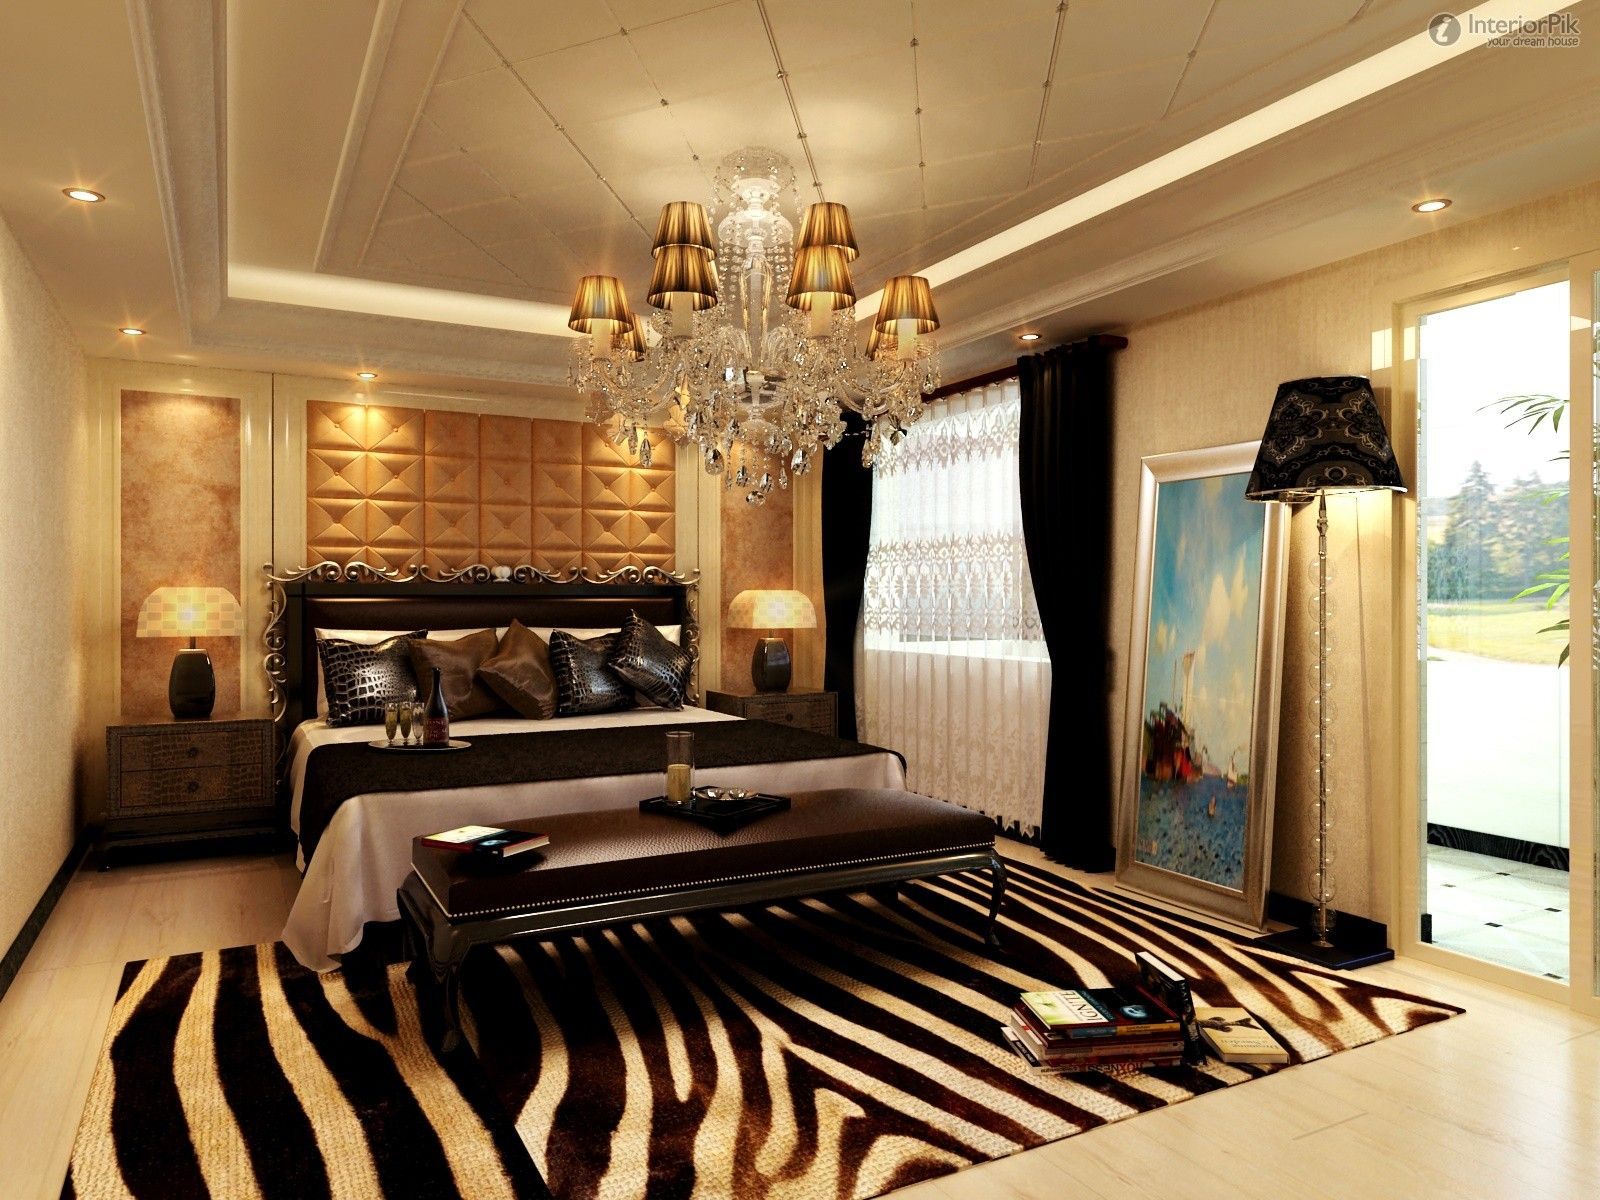 Amazing Home Decorating Modern Bedroom Design Ideas Showing Execellent Gold Shade Crystal